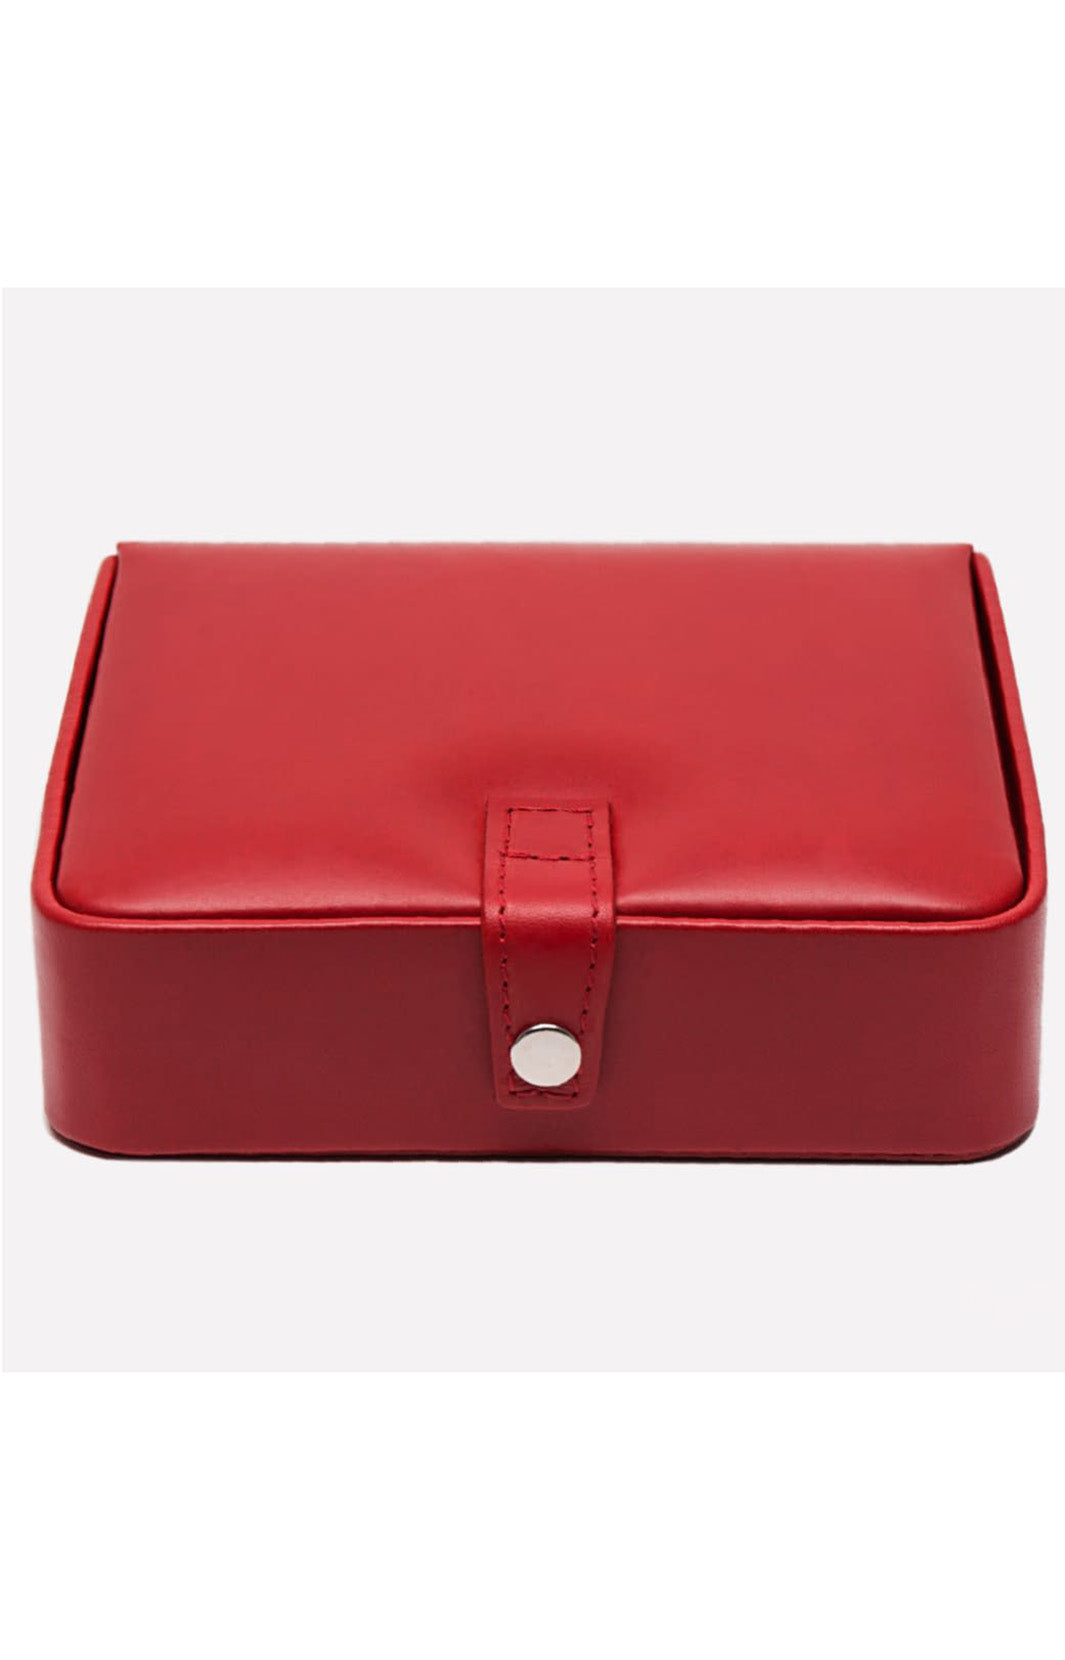 LIFESTYLE LARGE STUD/JEWELRY BOX - RED